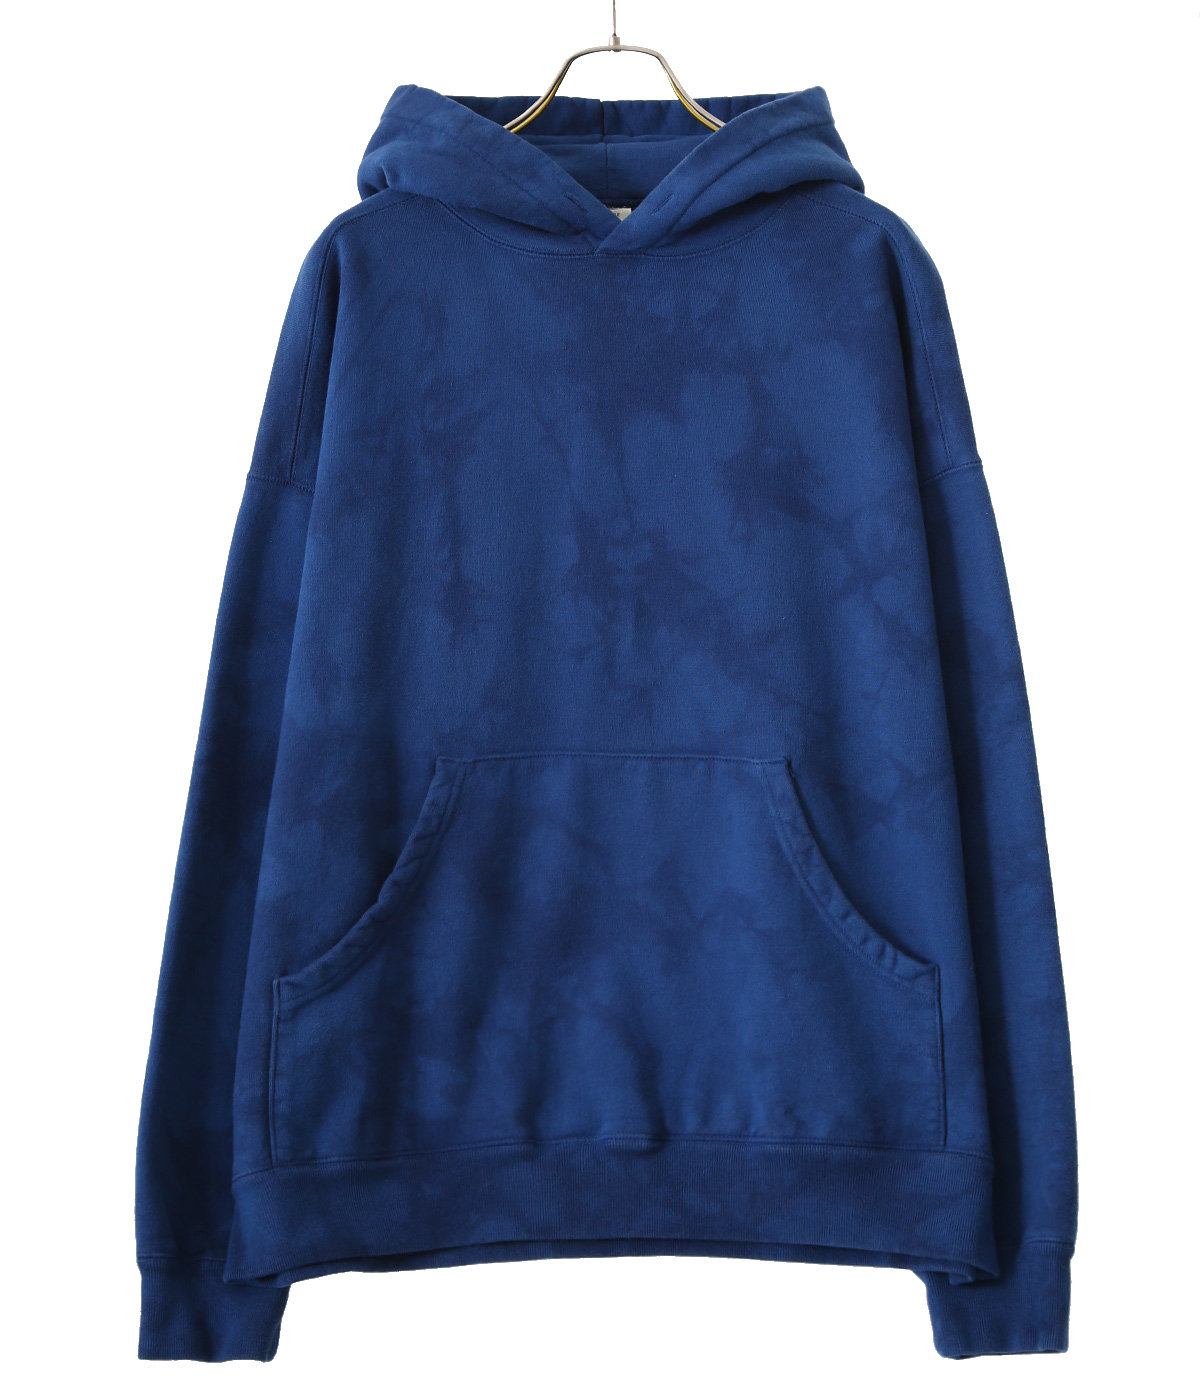 【予約】BIG POCKET BOX SWEAT PARKA TIE-DYED